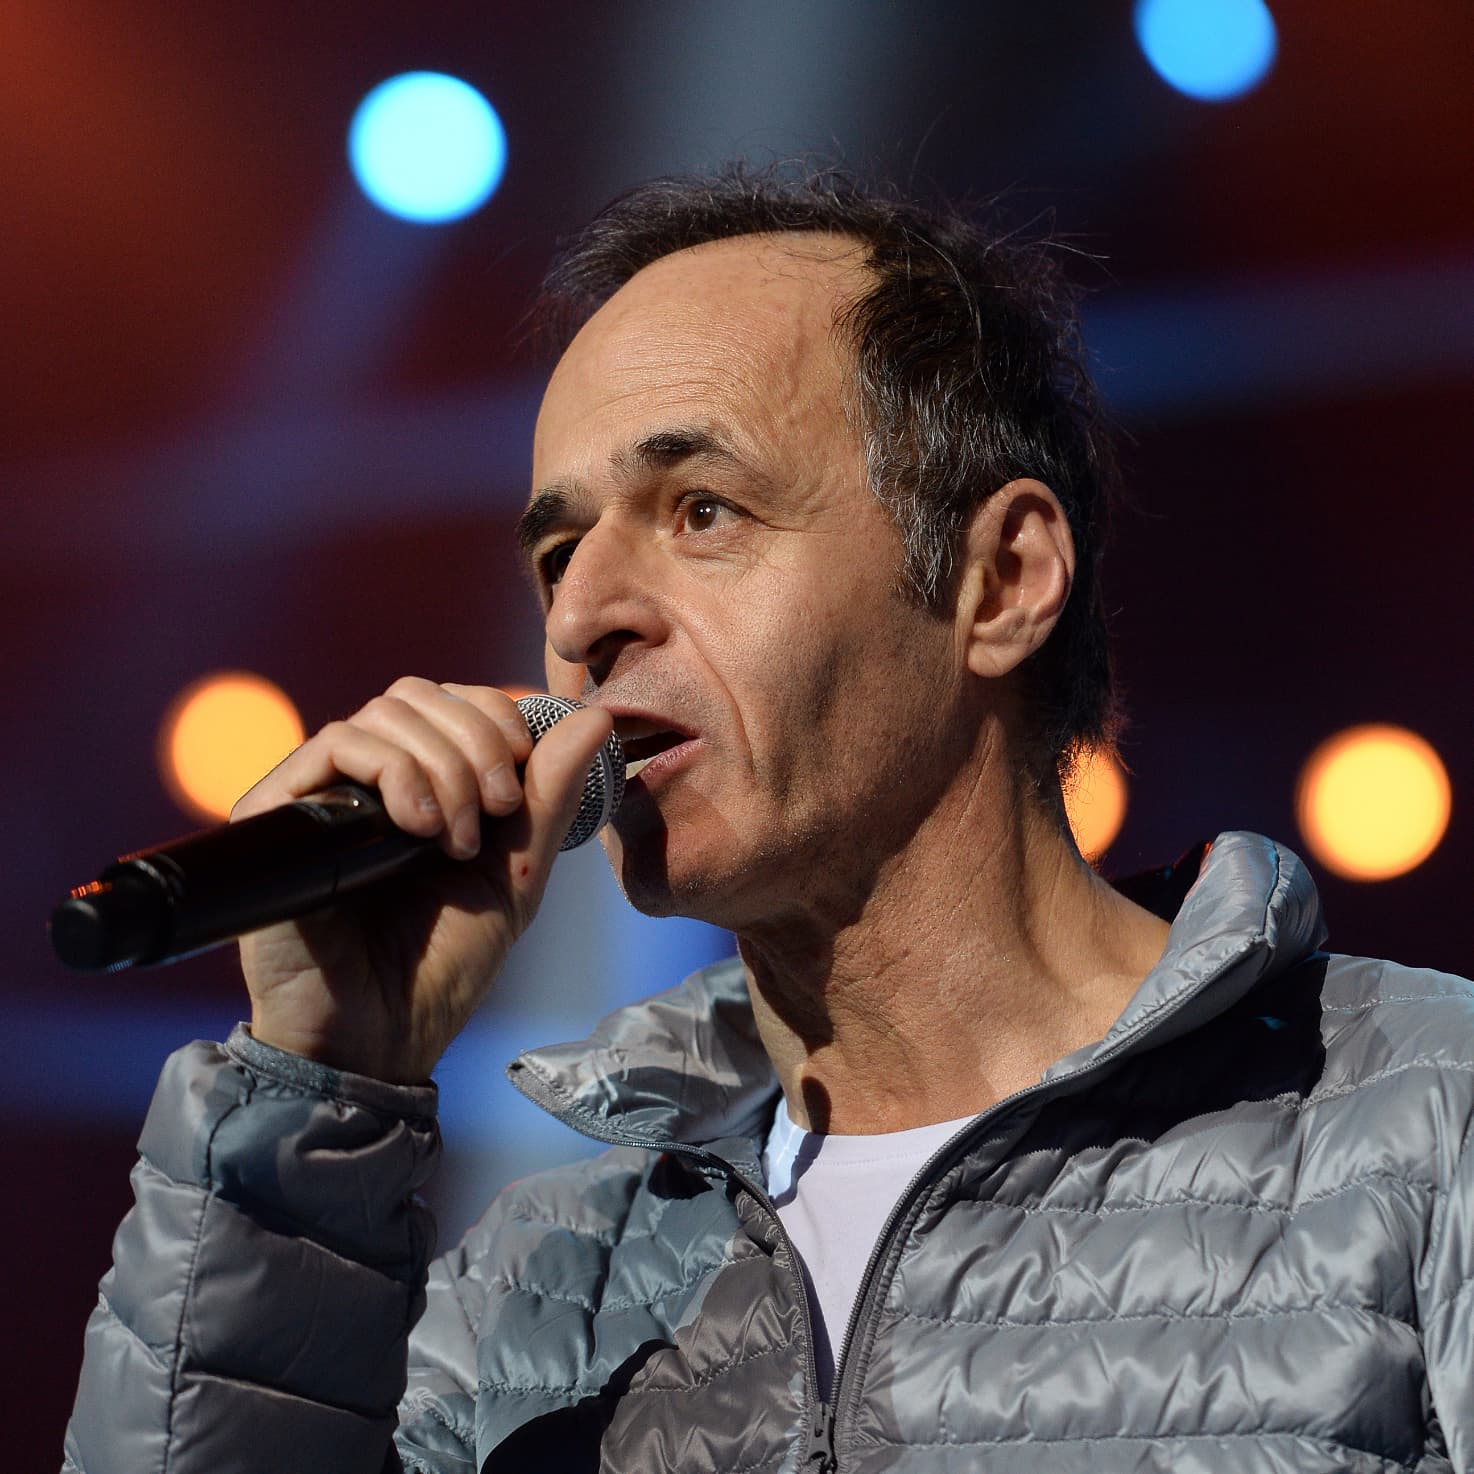 Jean-Jacques Goldman enfin disponible en streaming